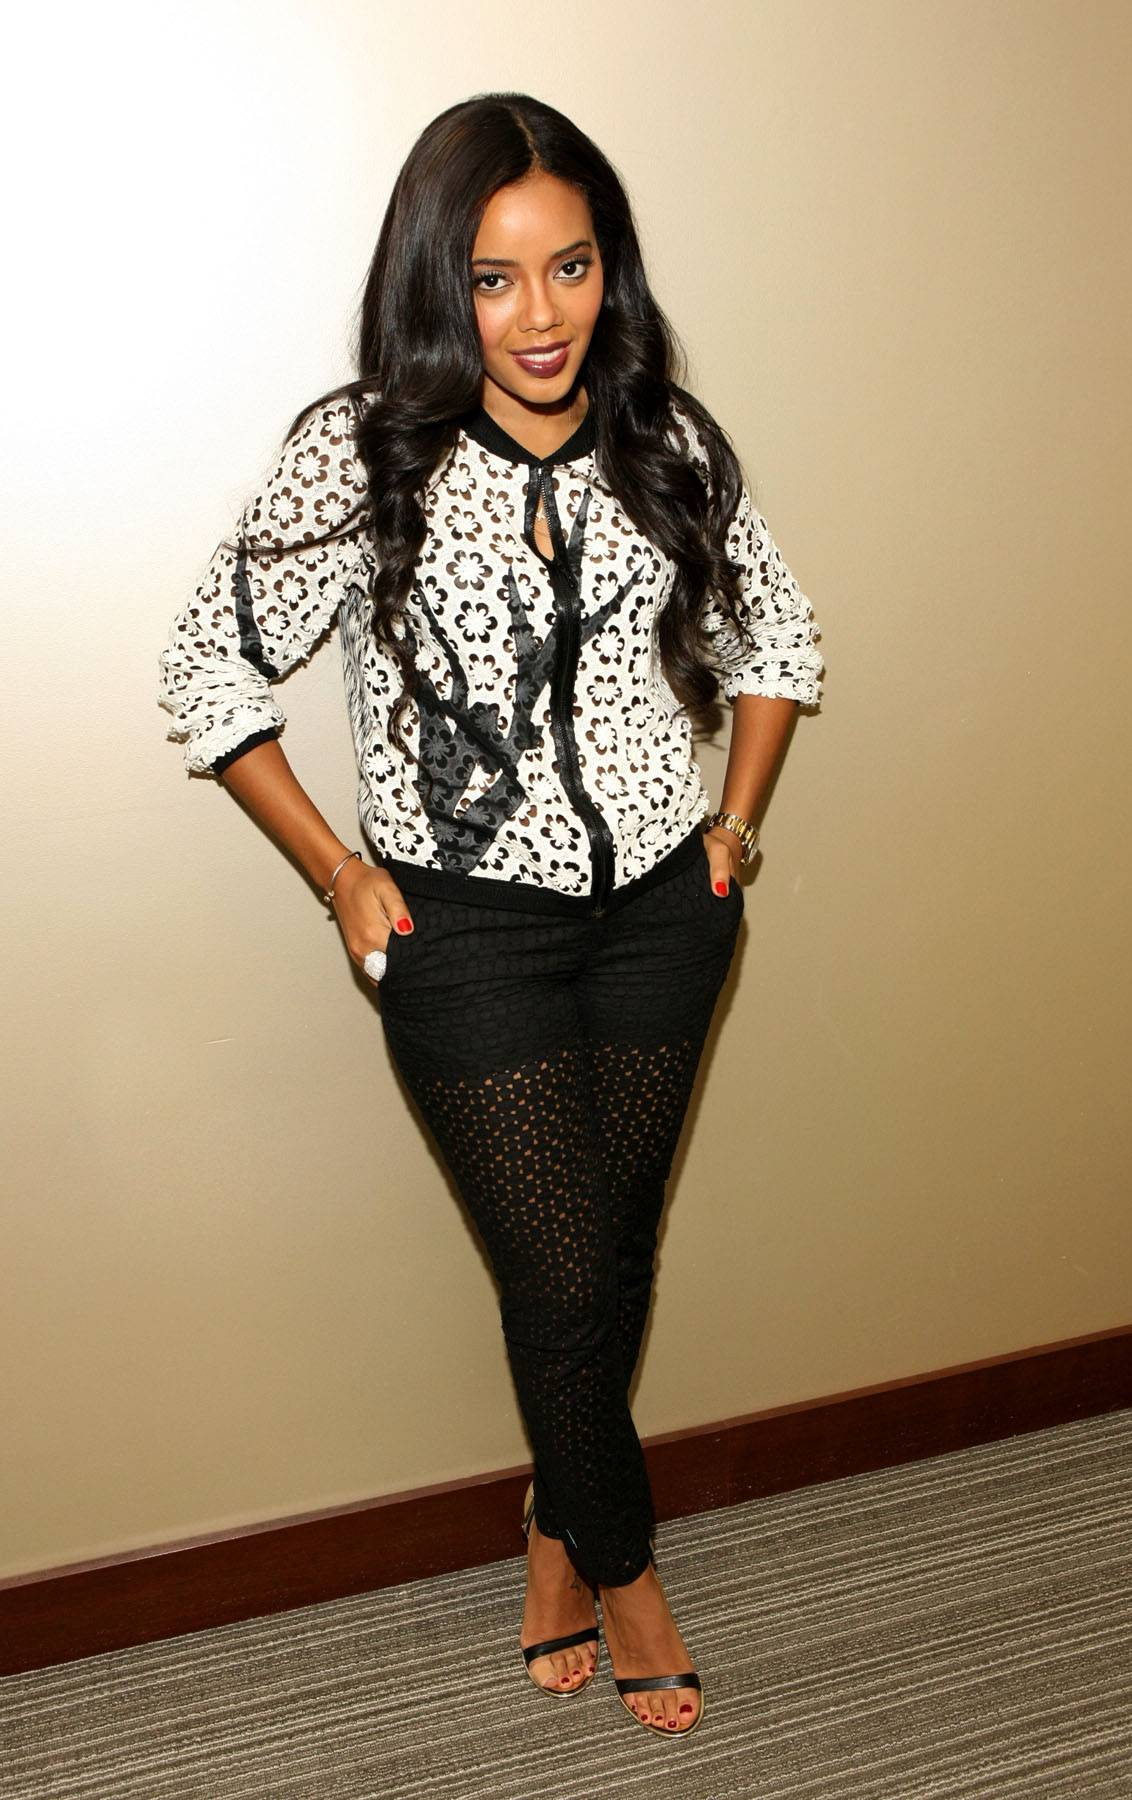 Lotus Flower - Host Angela Simmons wears a black-and-white floral printed shirt on 106. (Photo: Bennett Raglin/BET/Getty Images for BET)